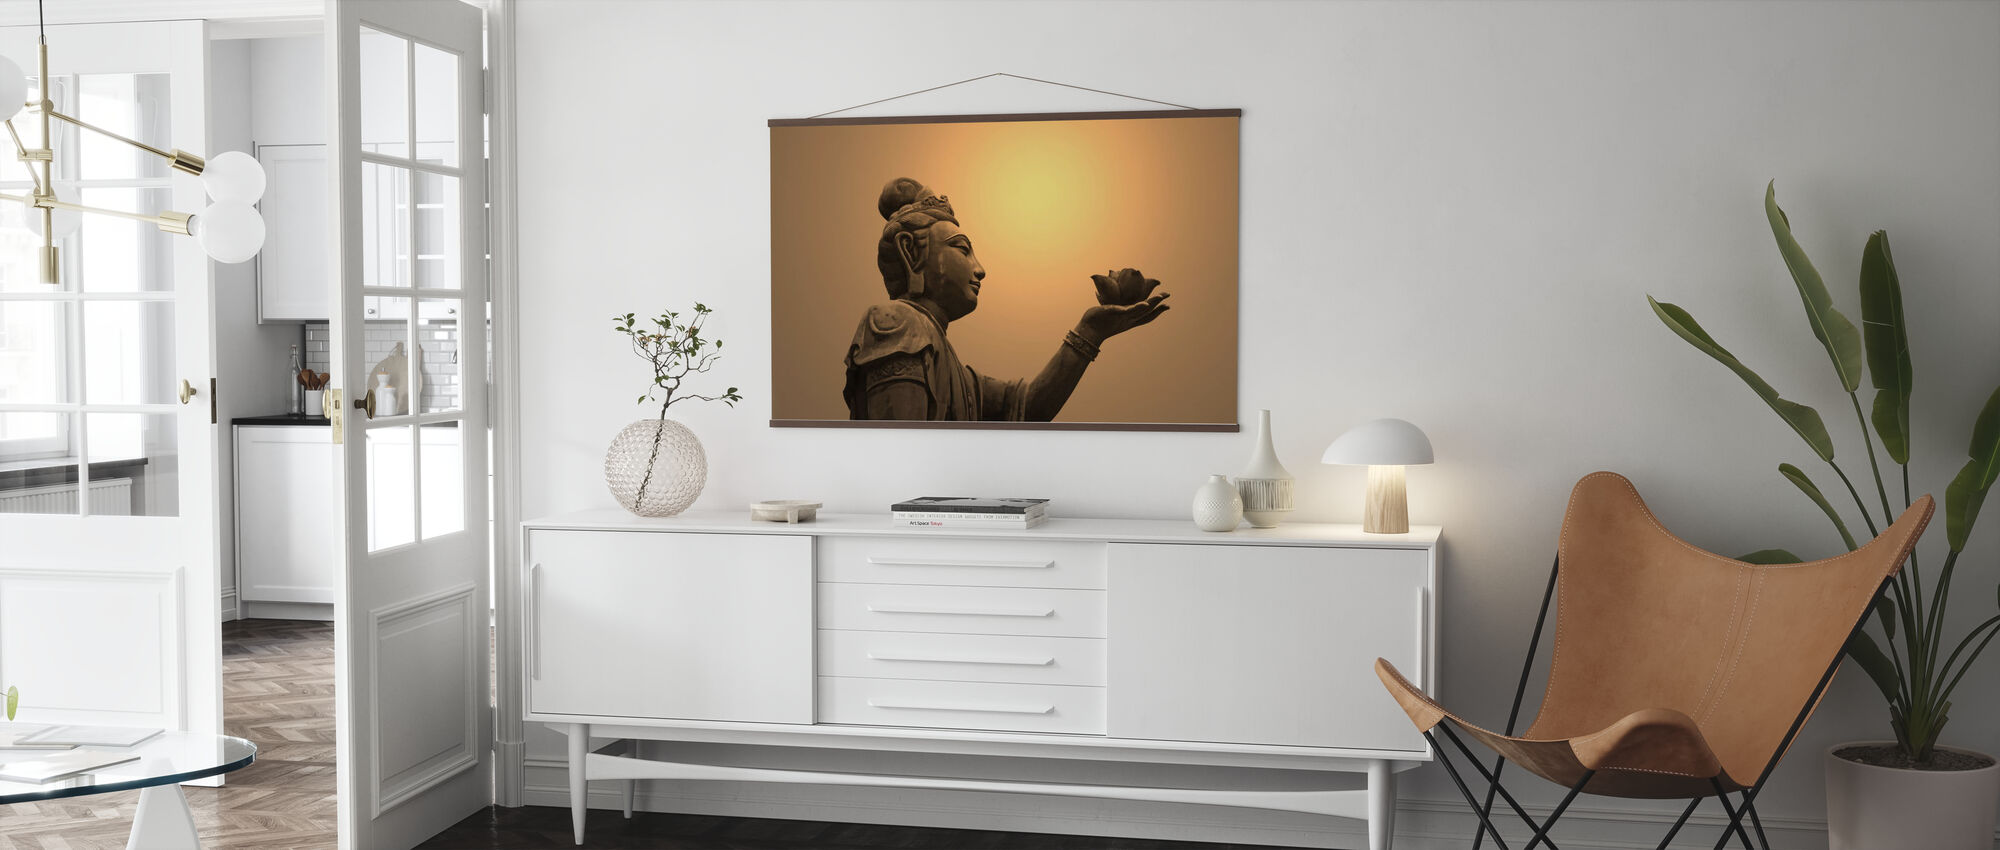 Buddhist Statue, Hong Kong - Poster - Living Room